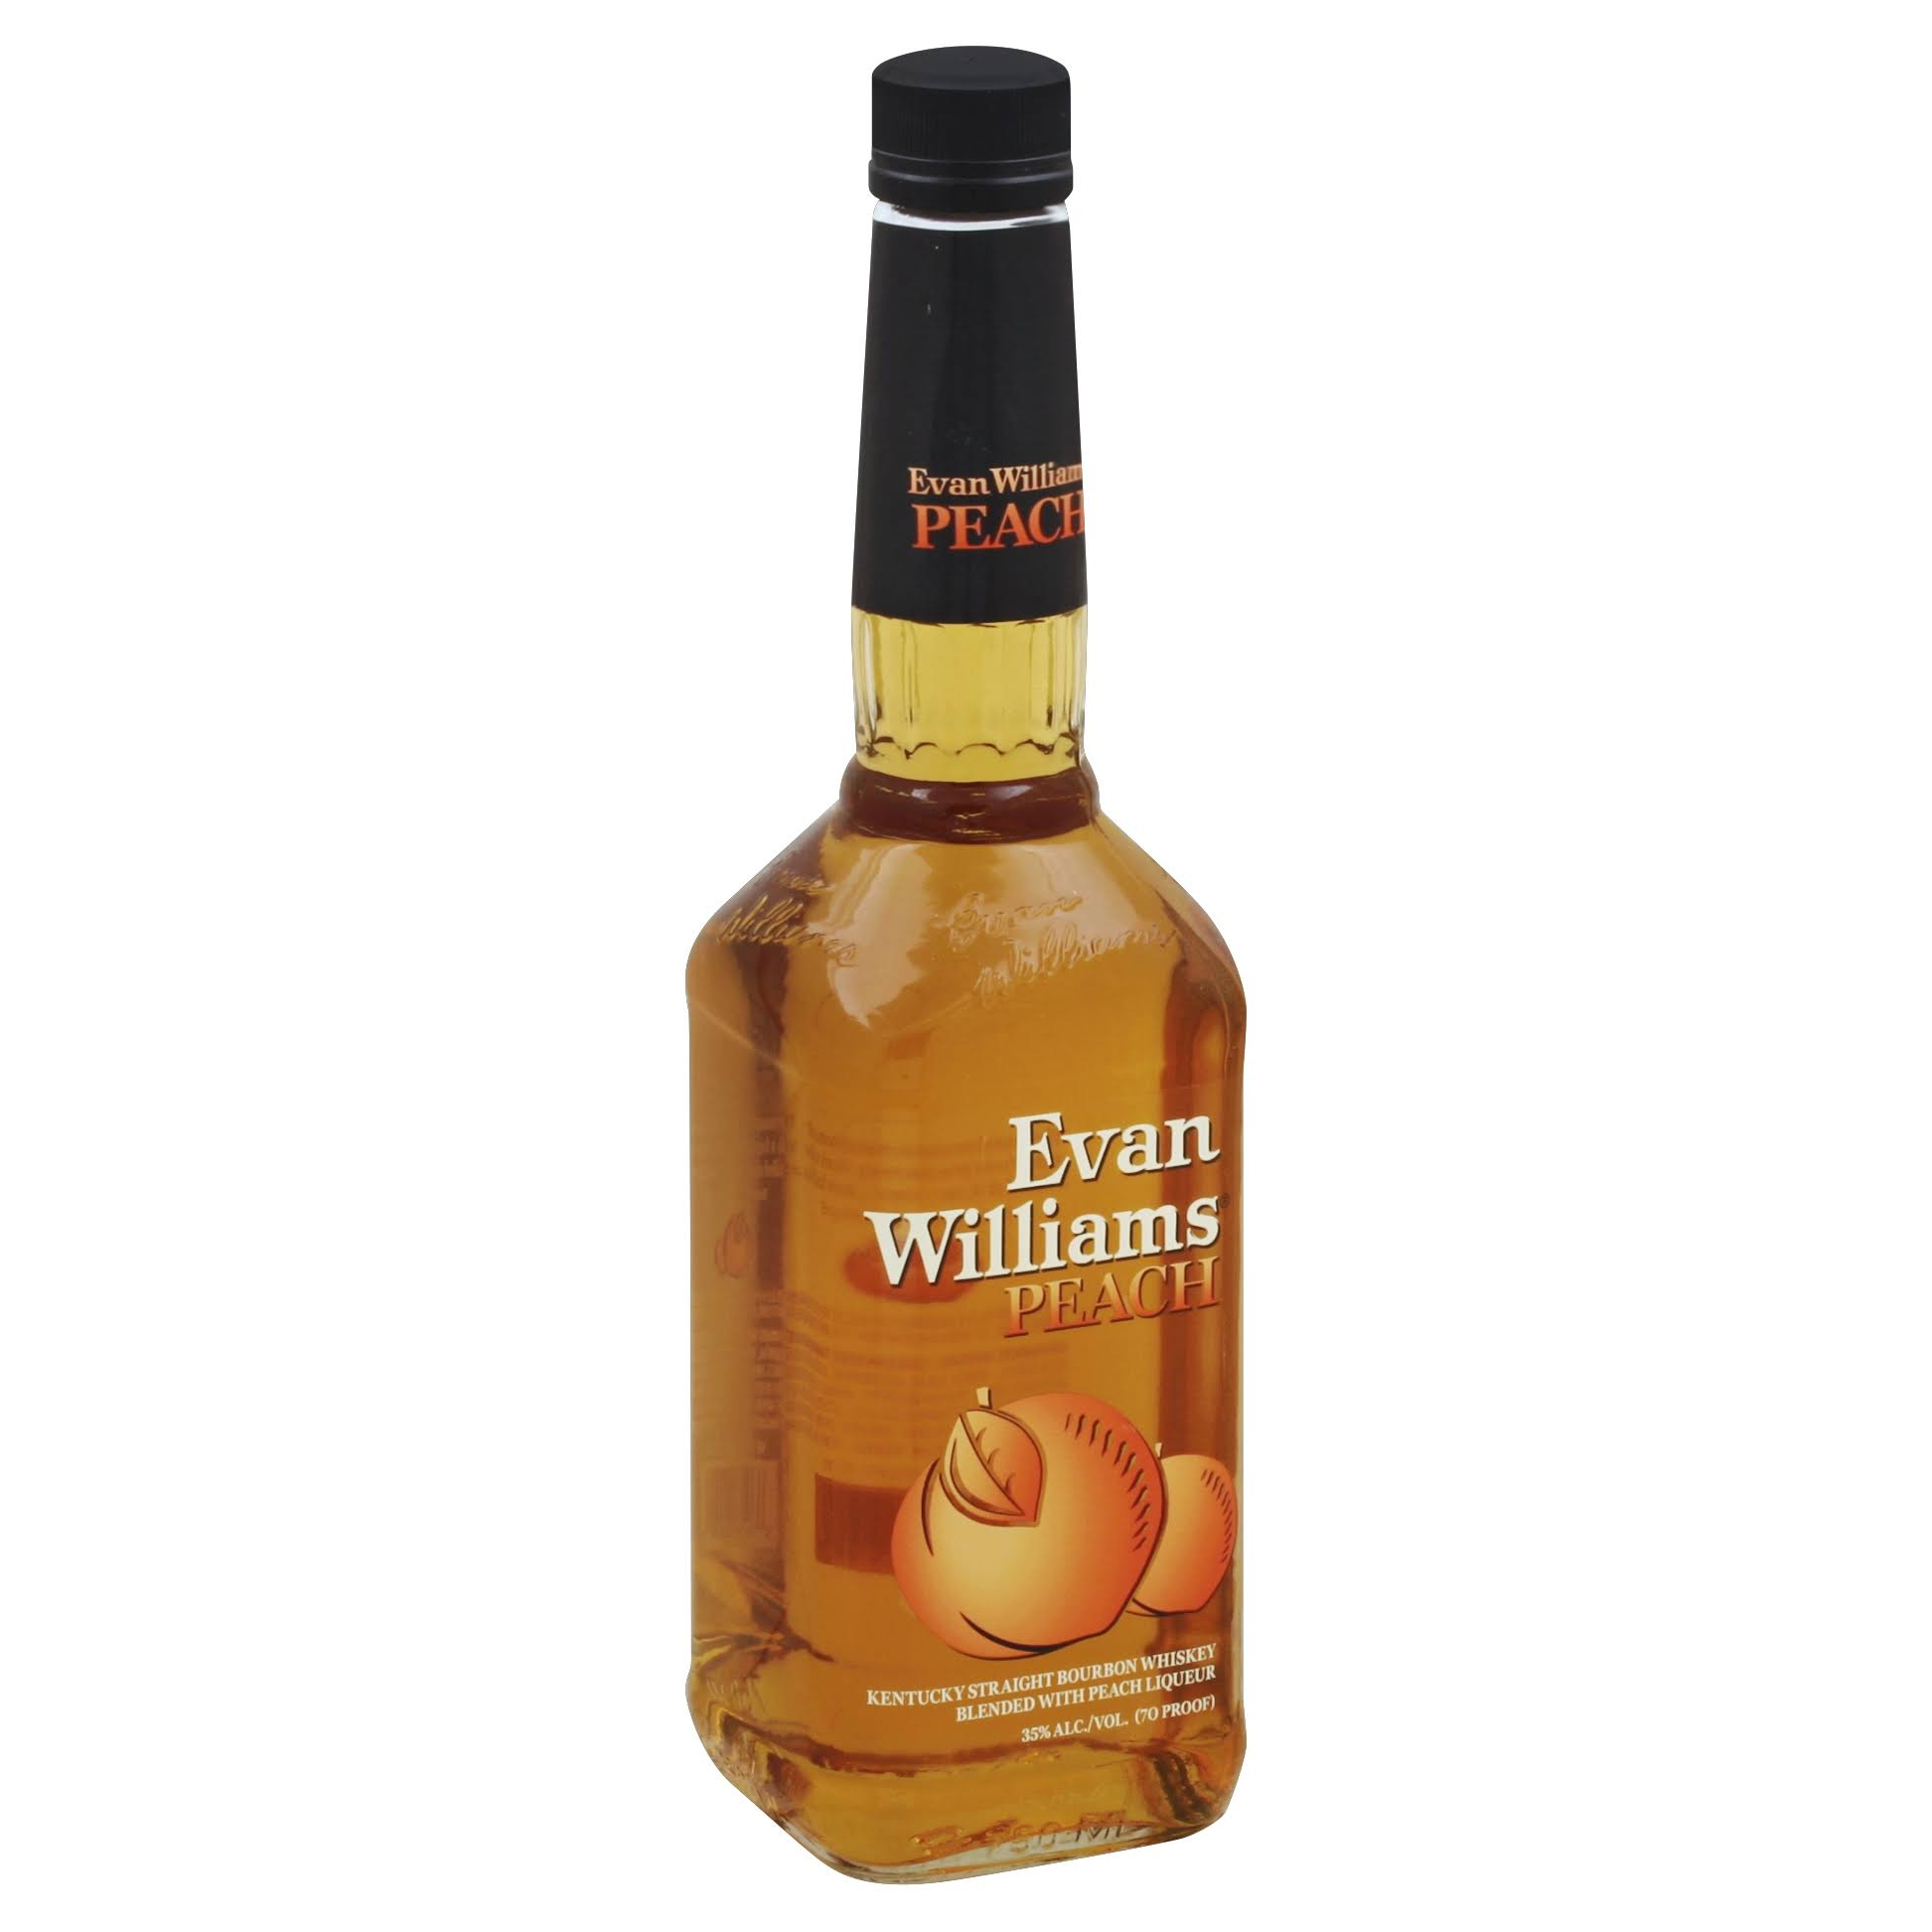 Evan Williams Whiskey, Kentucky Straight Bourbon, Peach - 750 ml